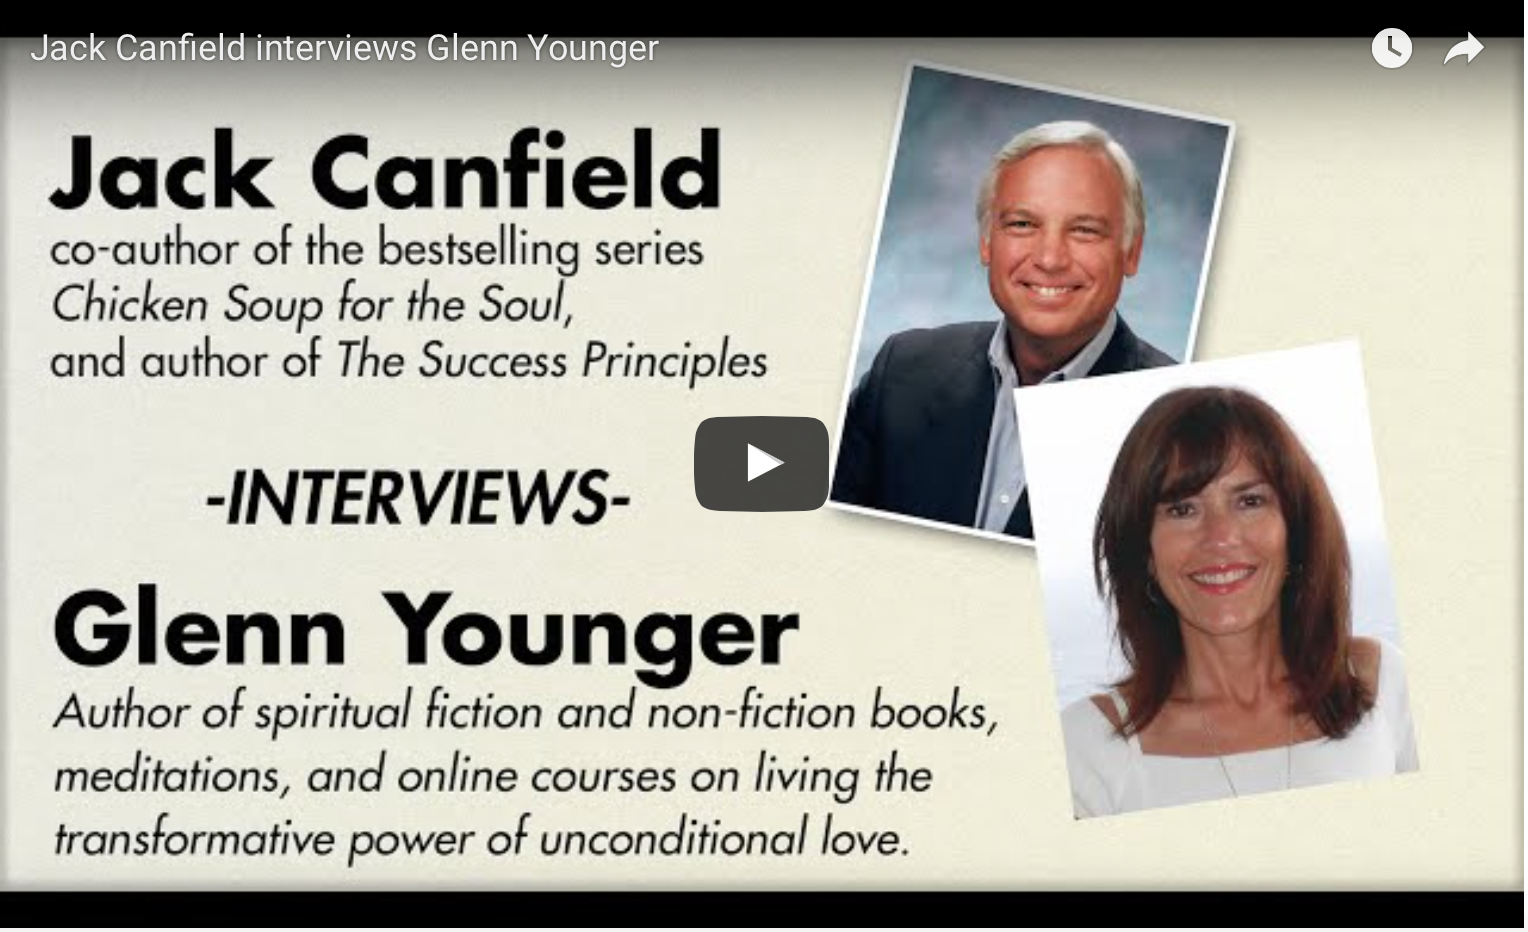 Divine Light Vibrations, Glenn Younger author video interview with best selling author Jack Canfield on her spiritual fiction books